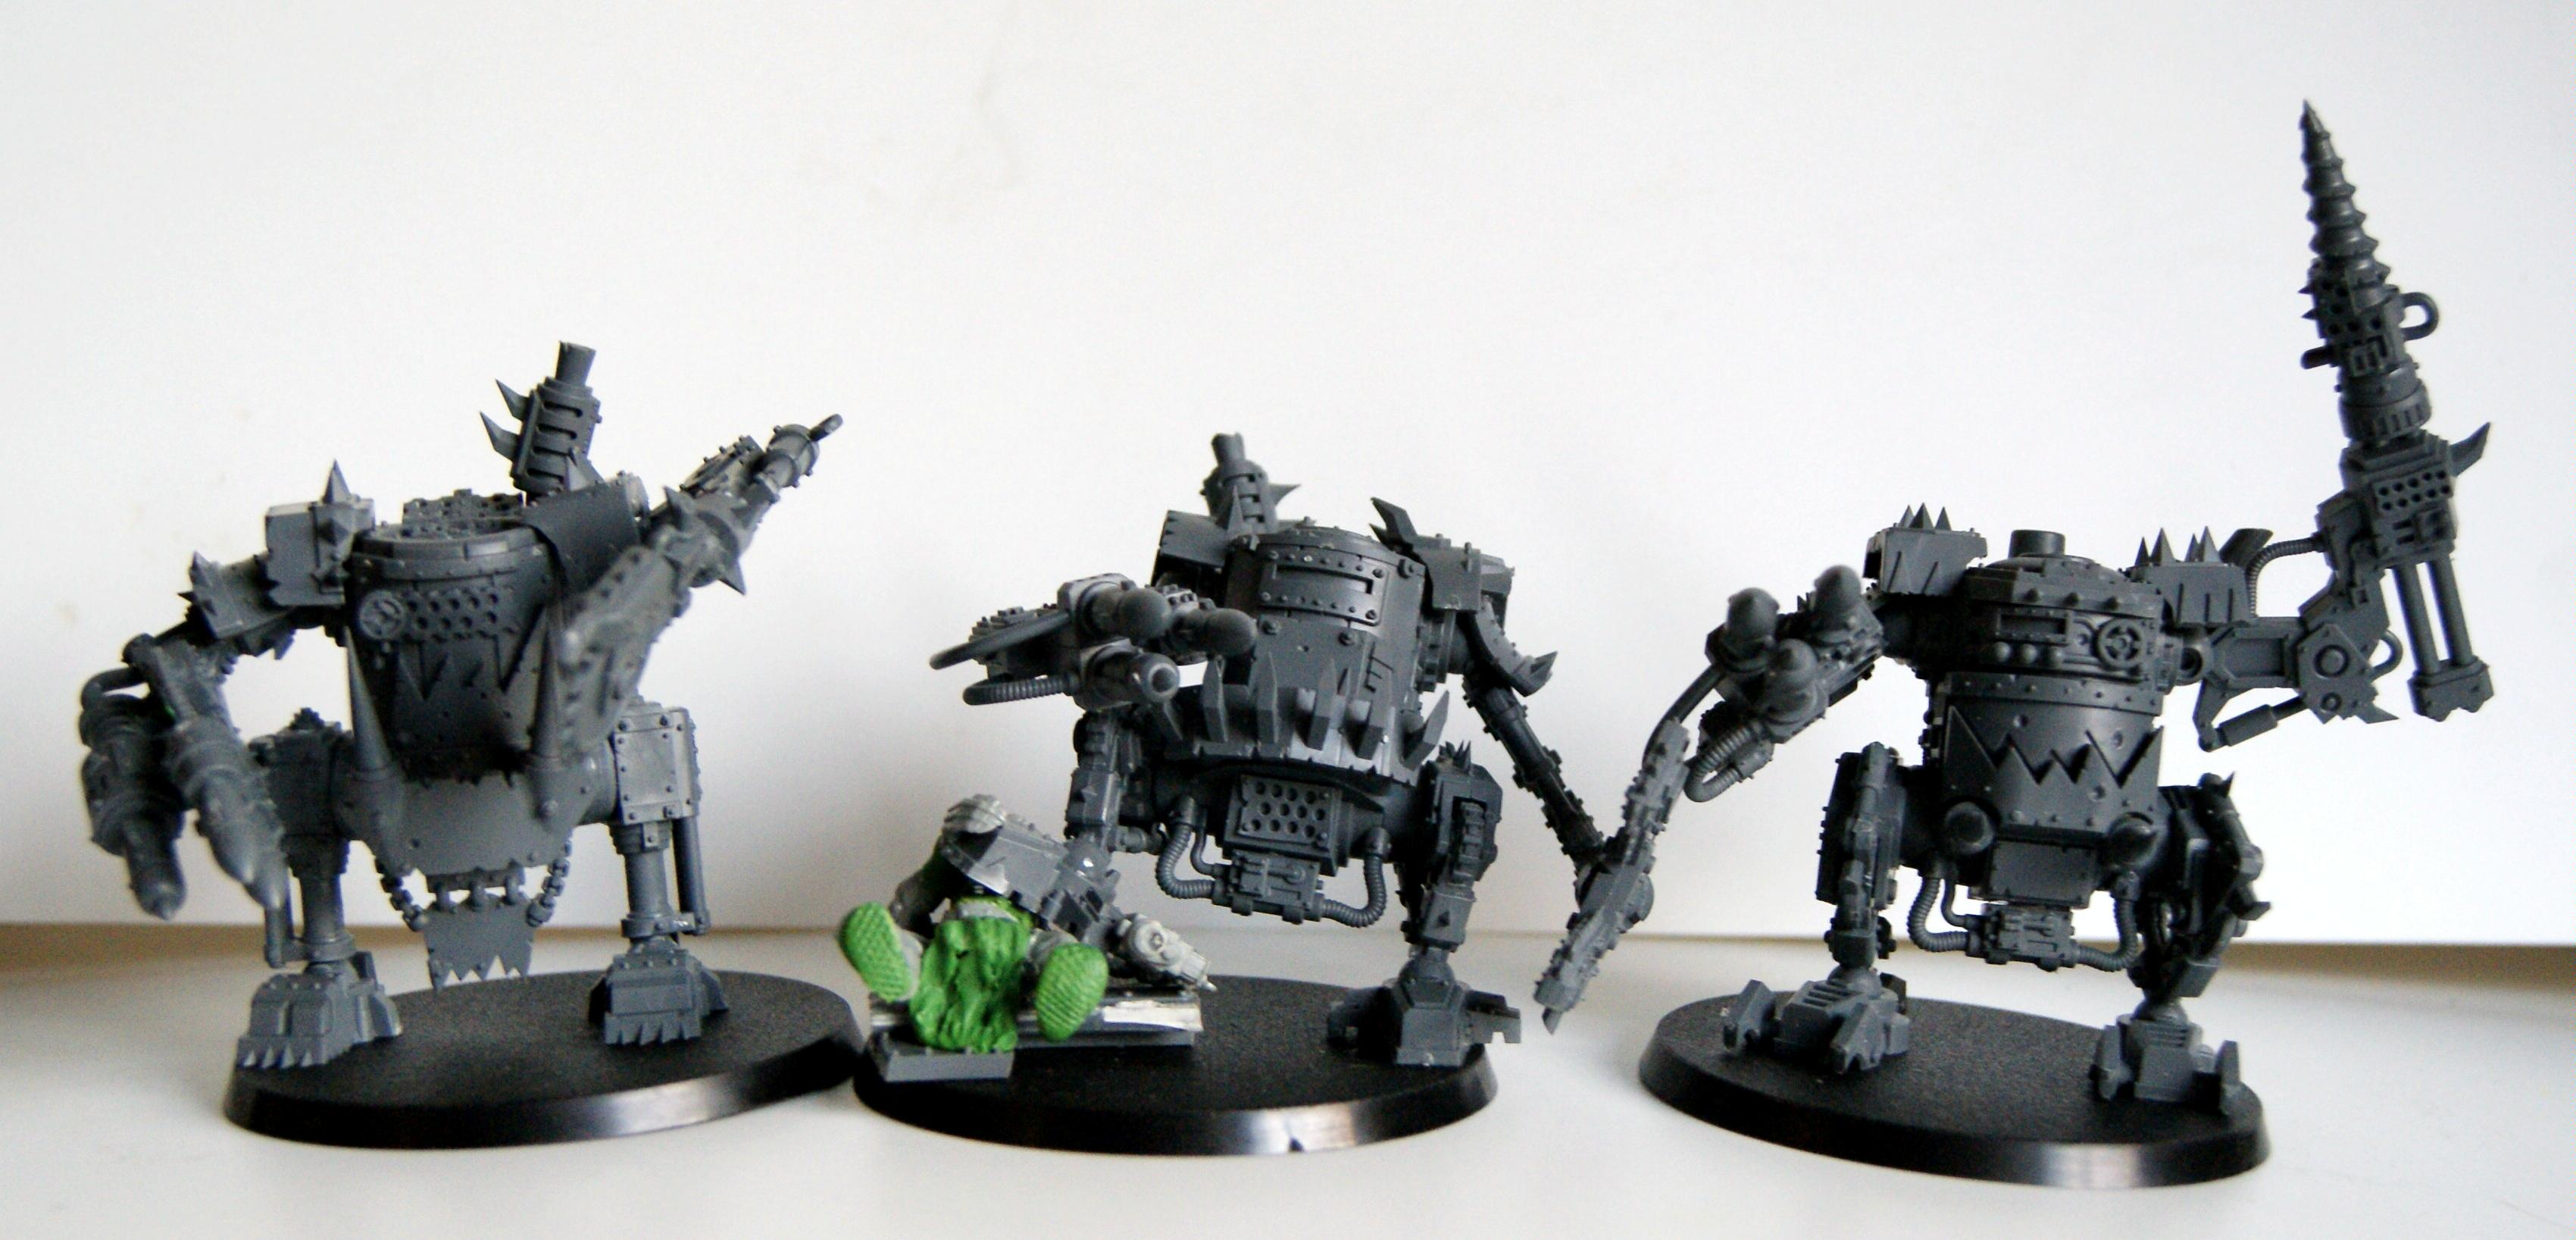 Grot Rebellion, Grot Rebels, Grots, Killa Kan, Orks, Warhammer 40,000